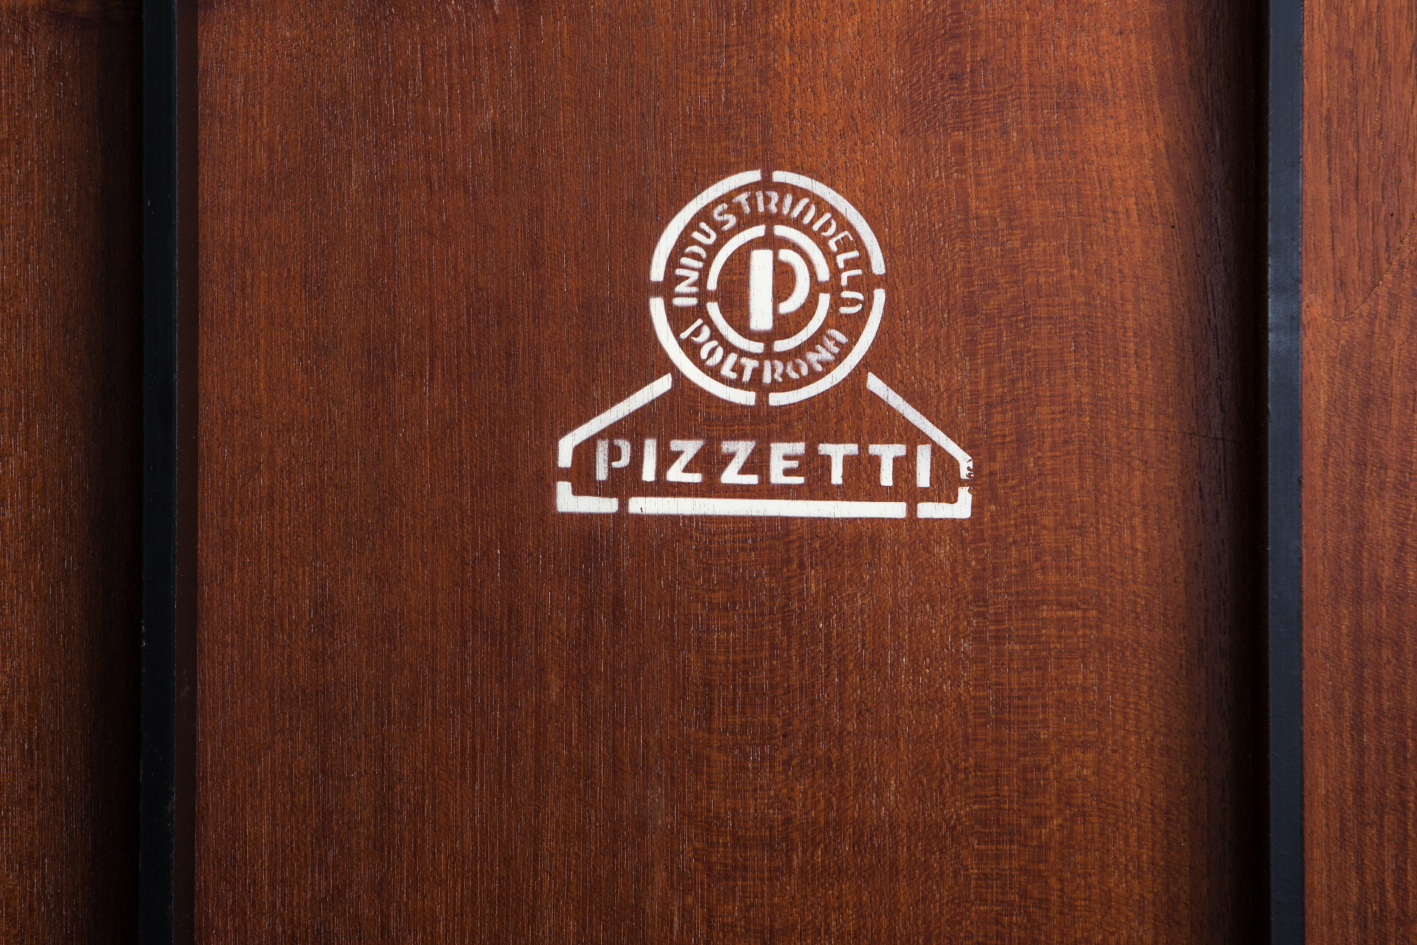 Rosewood metal mid century Italian side table by Pizzetti - Stamp logo mark